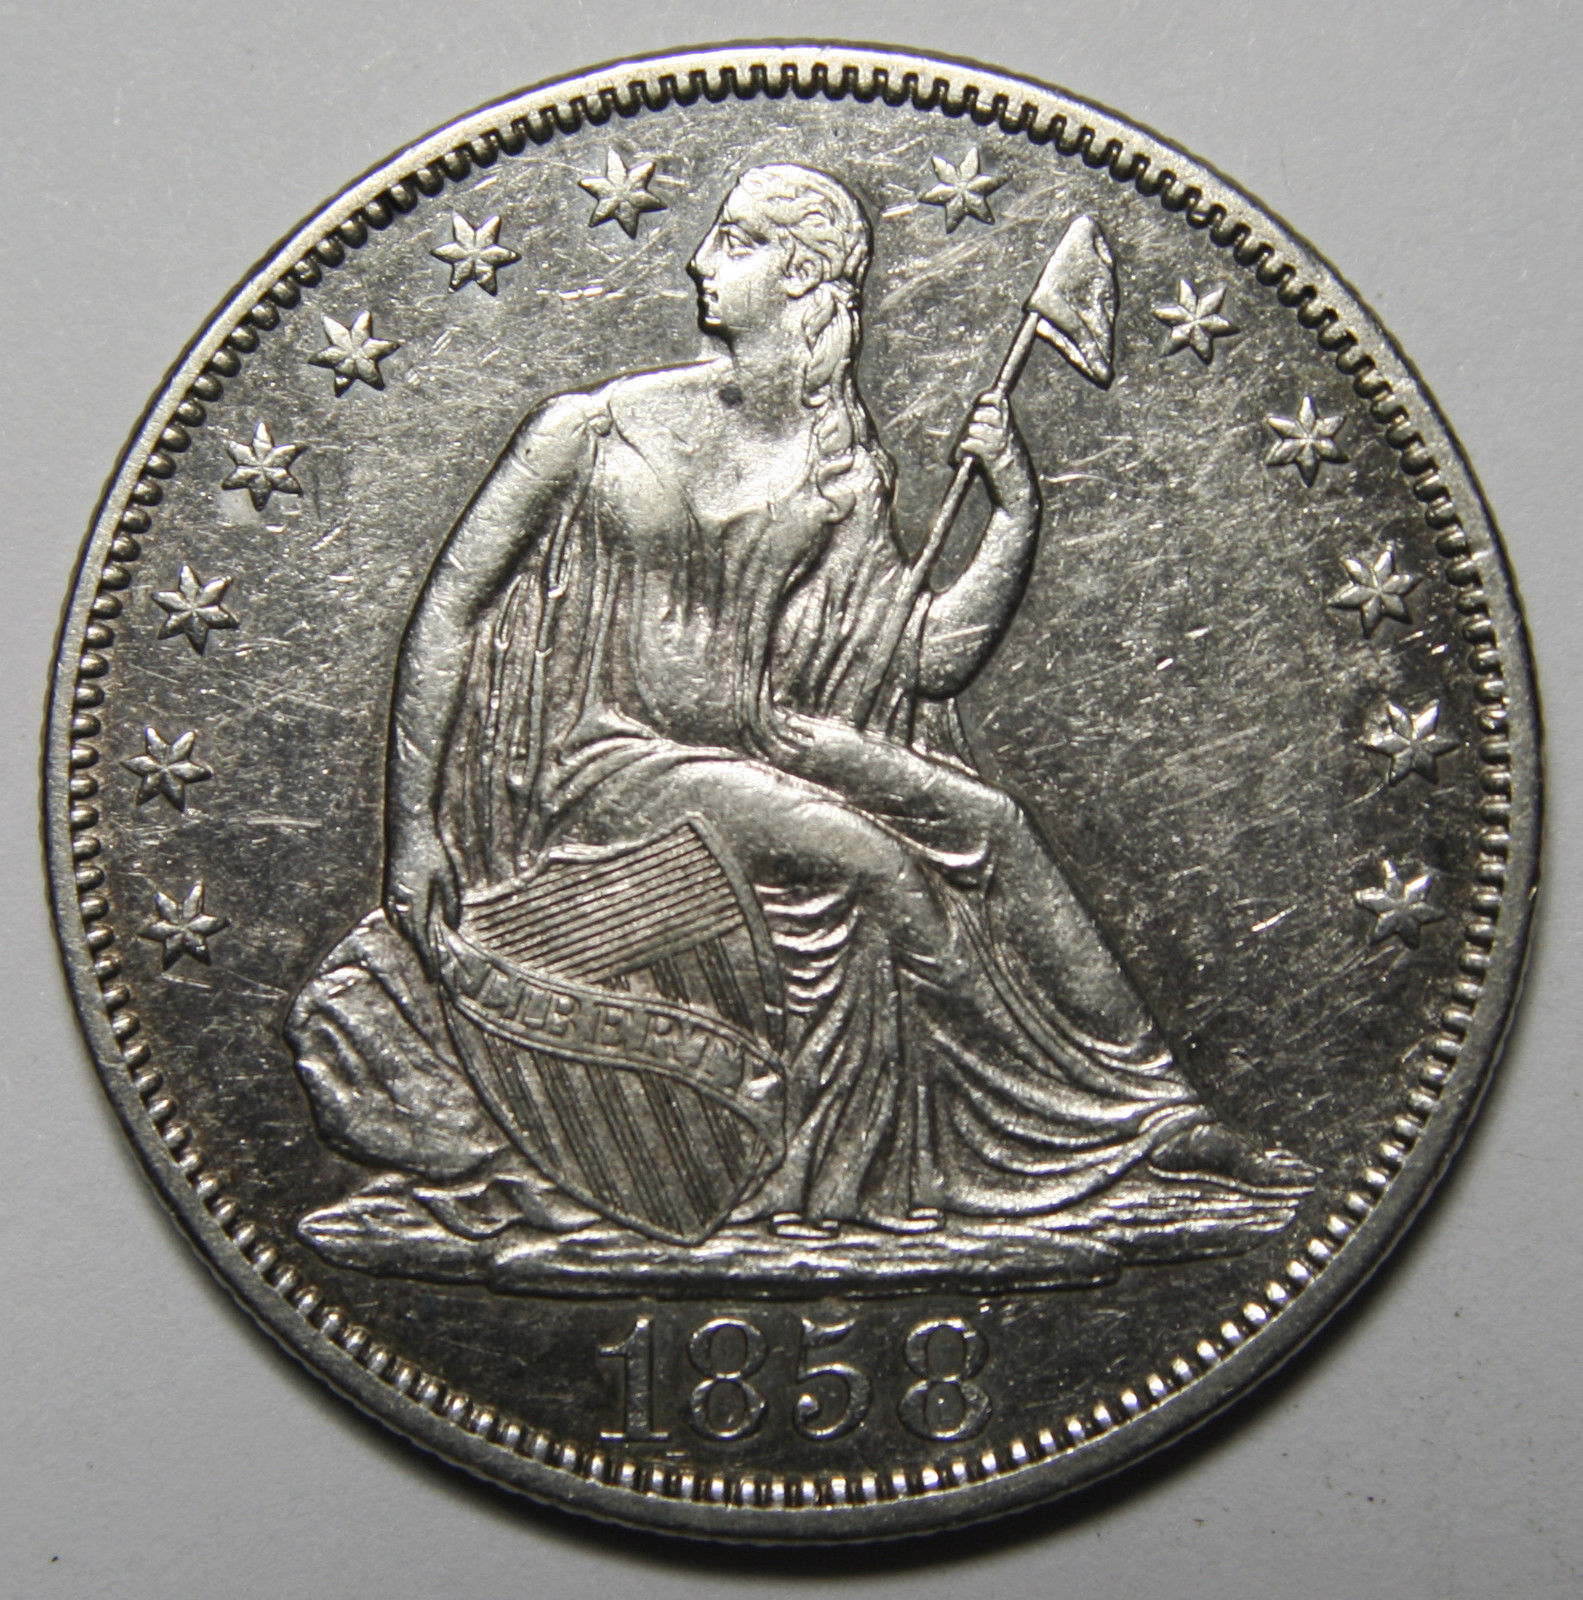 1858 Seated Silver Liberty Half Dollar 50¢ Coin Lot# MZ 3916